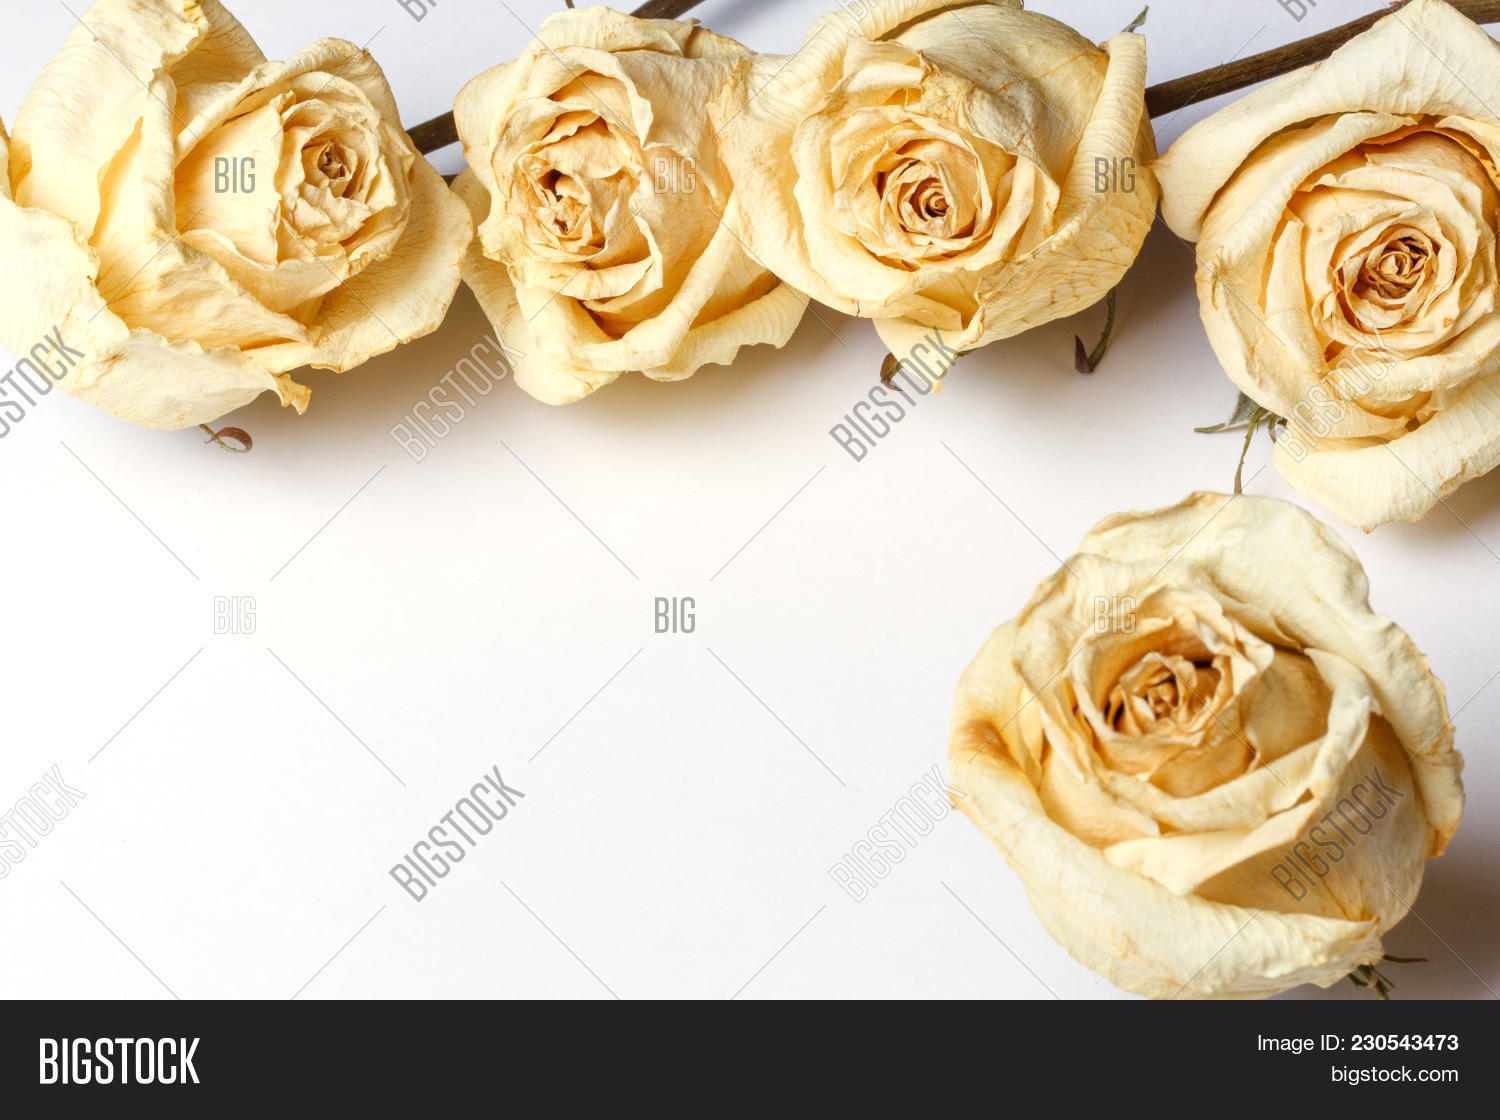 Dried White Roses Image Photo Free Trial Bigstock